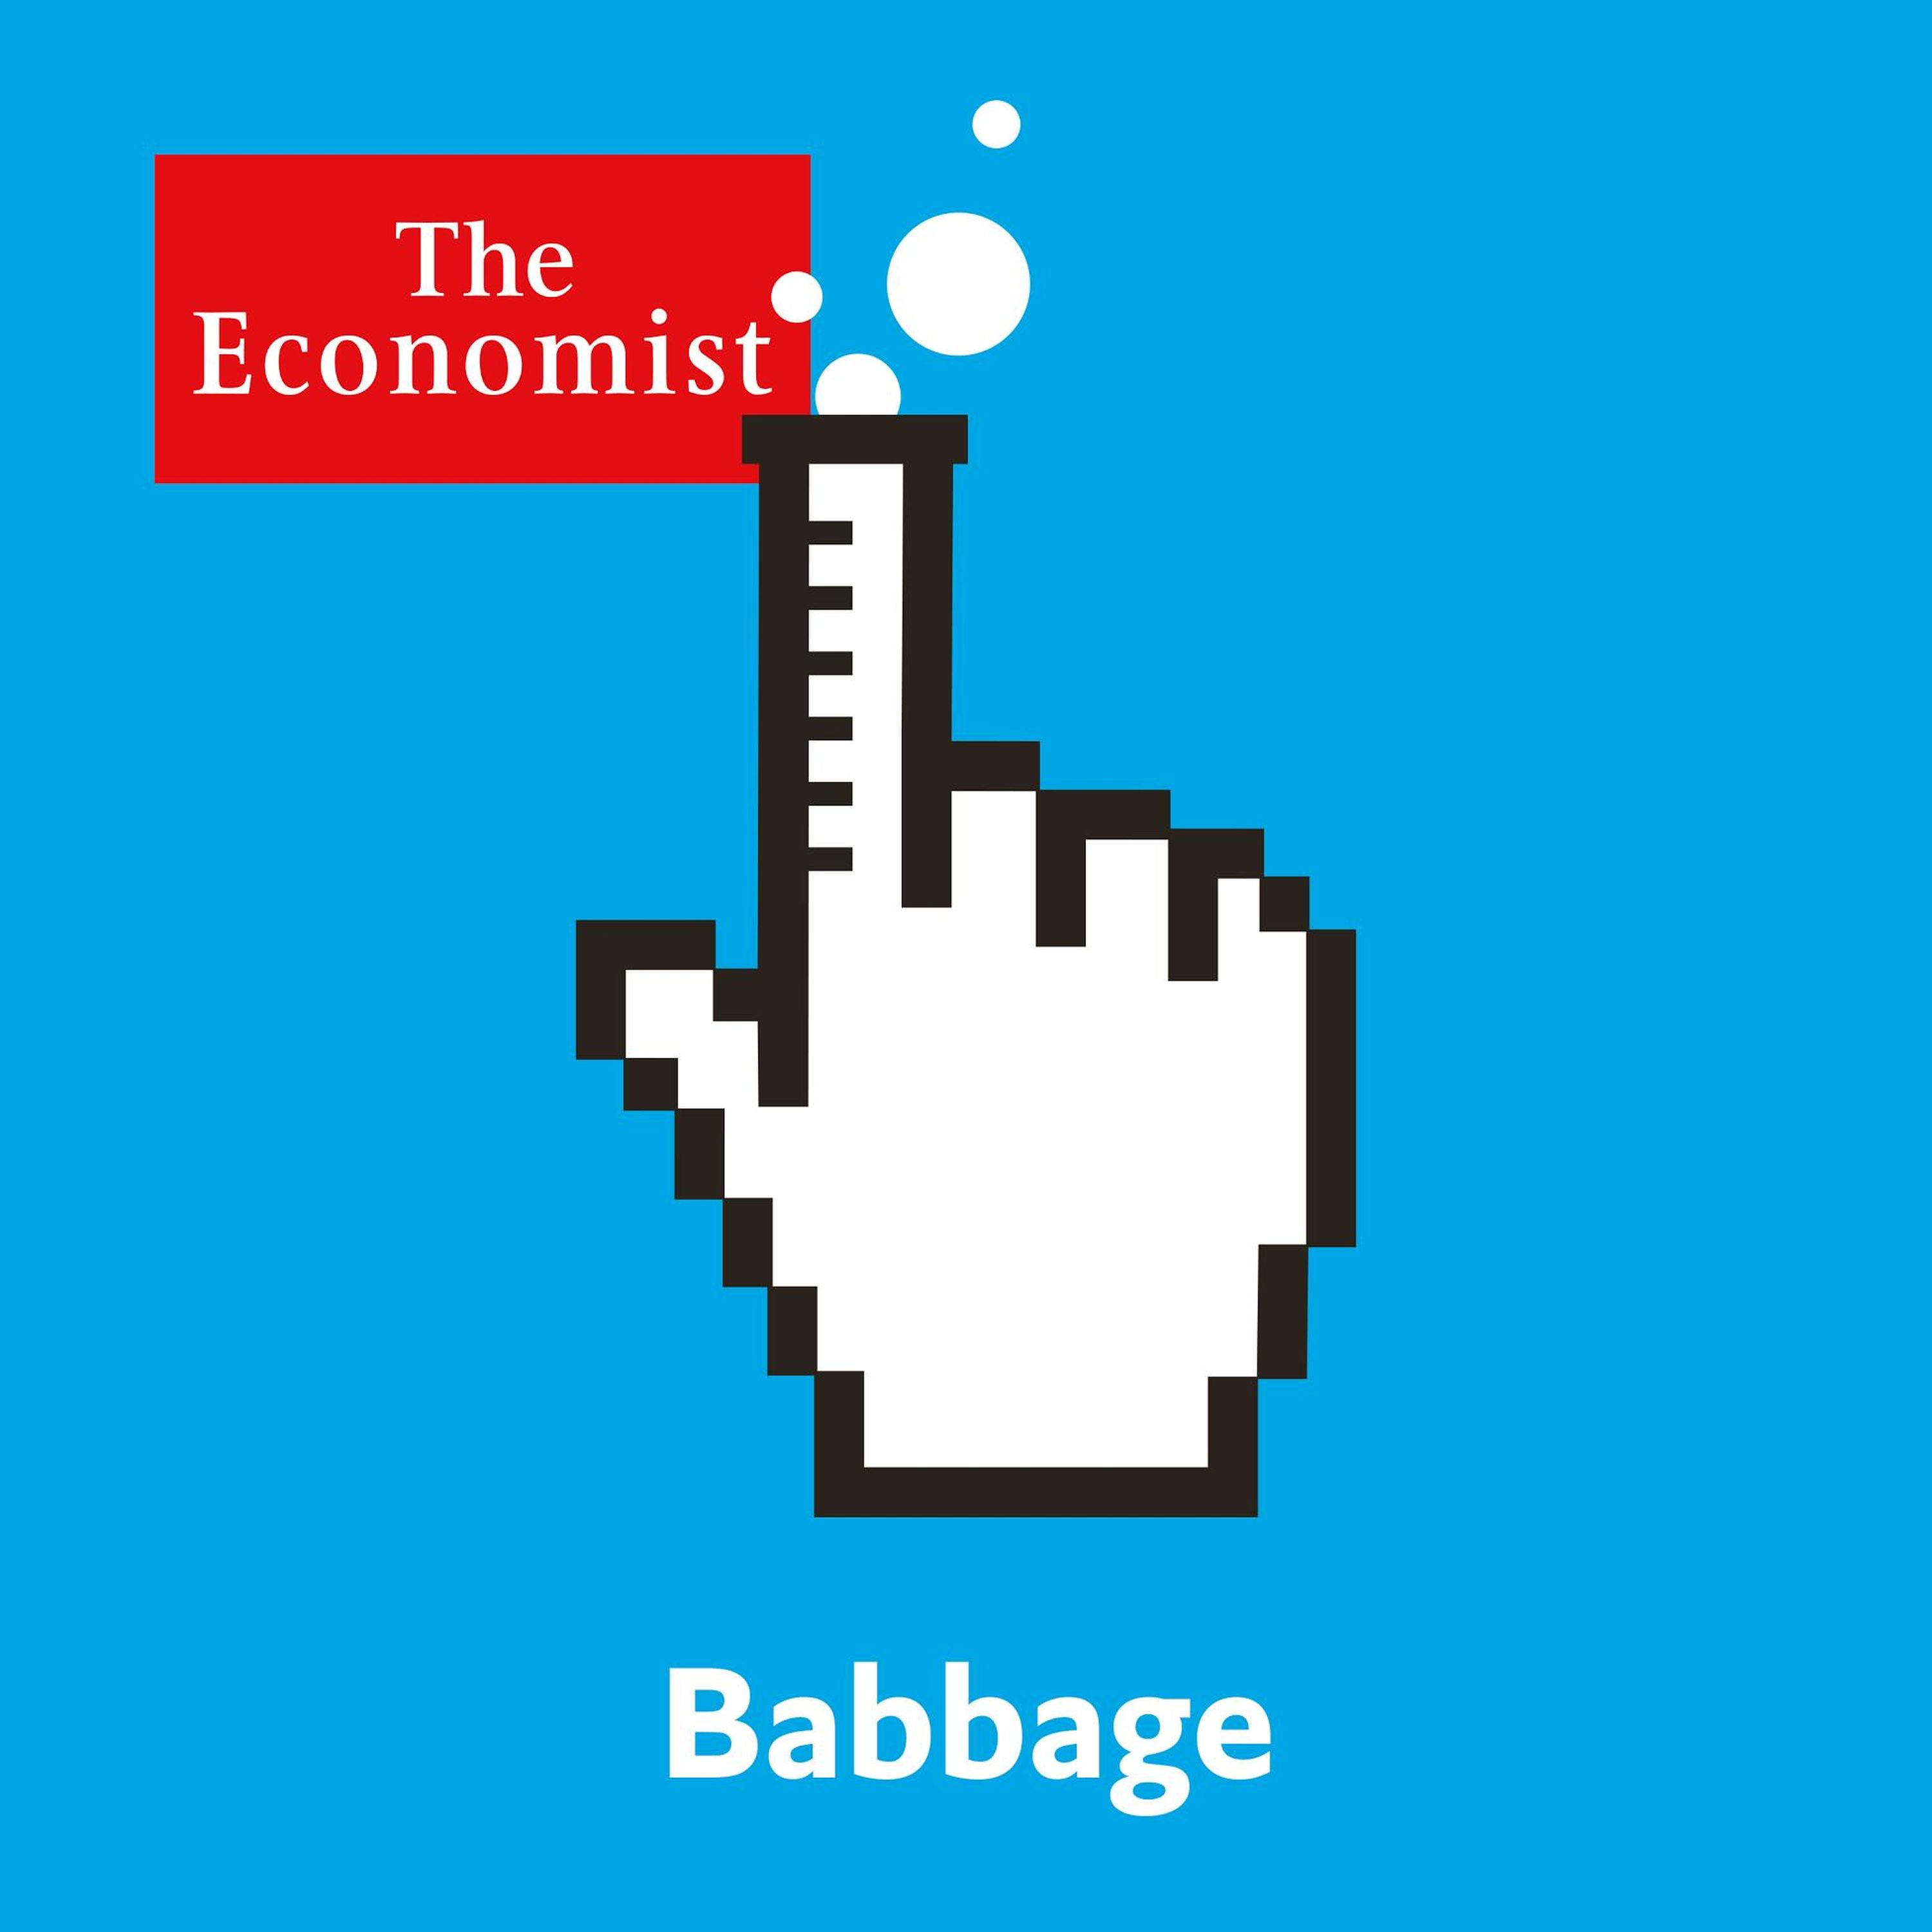 Babbage: A cure for Ebola?